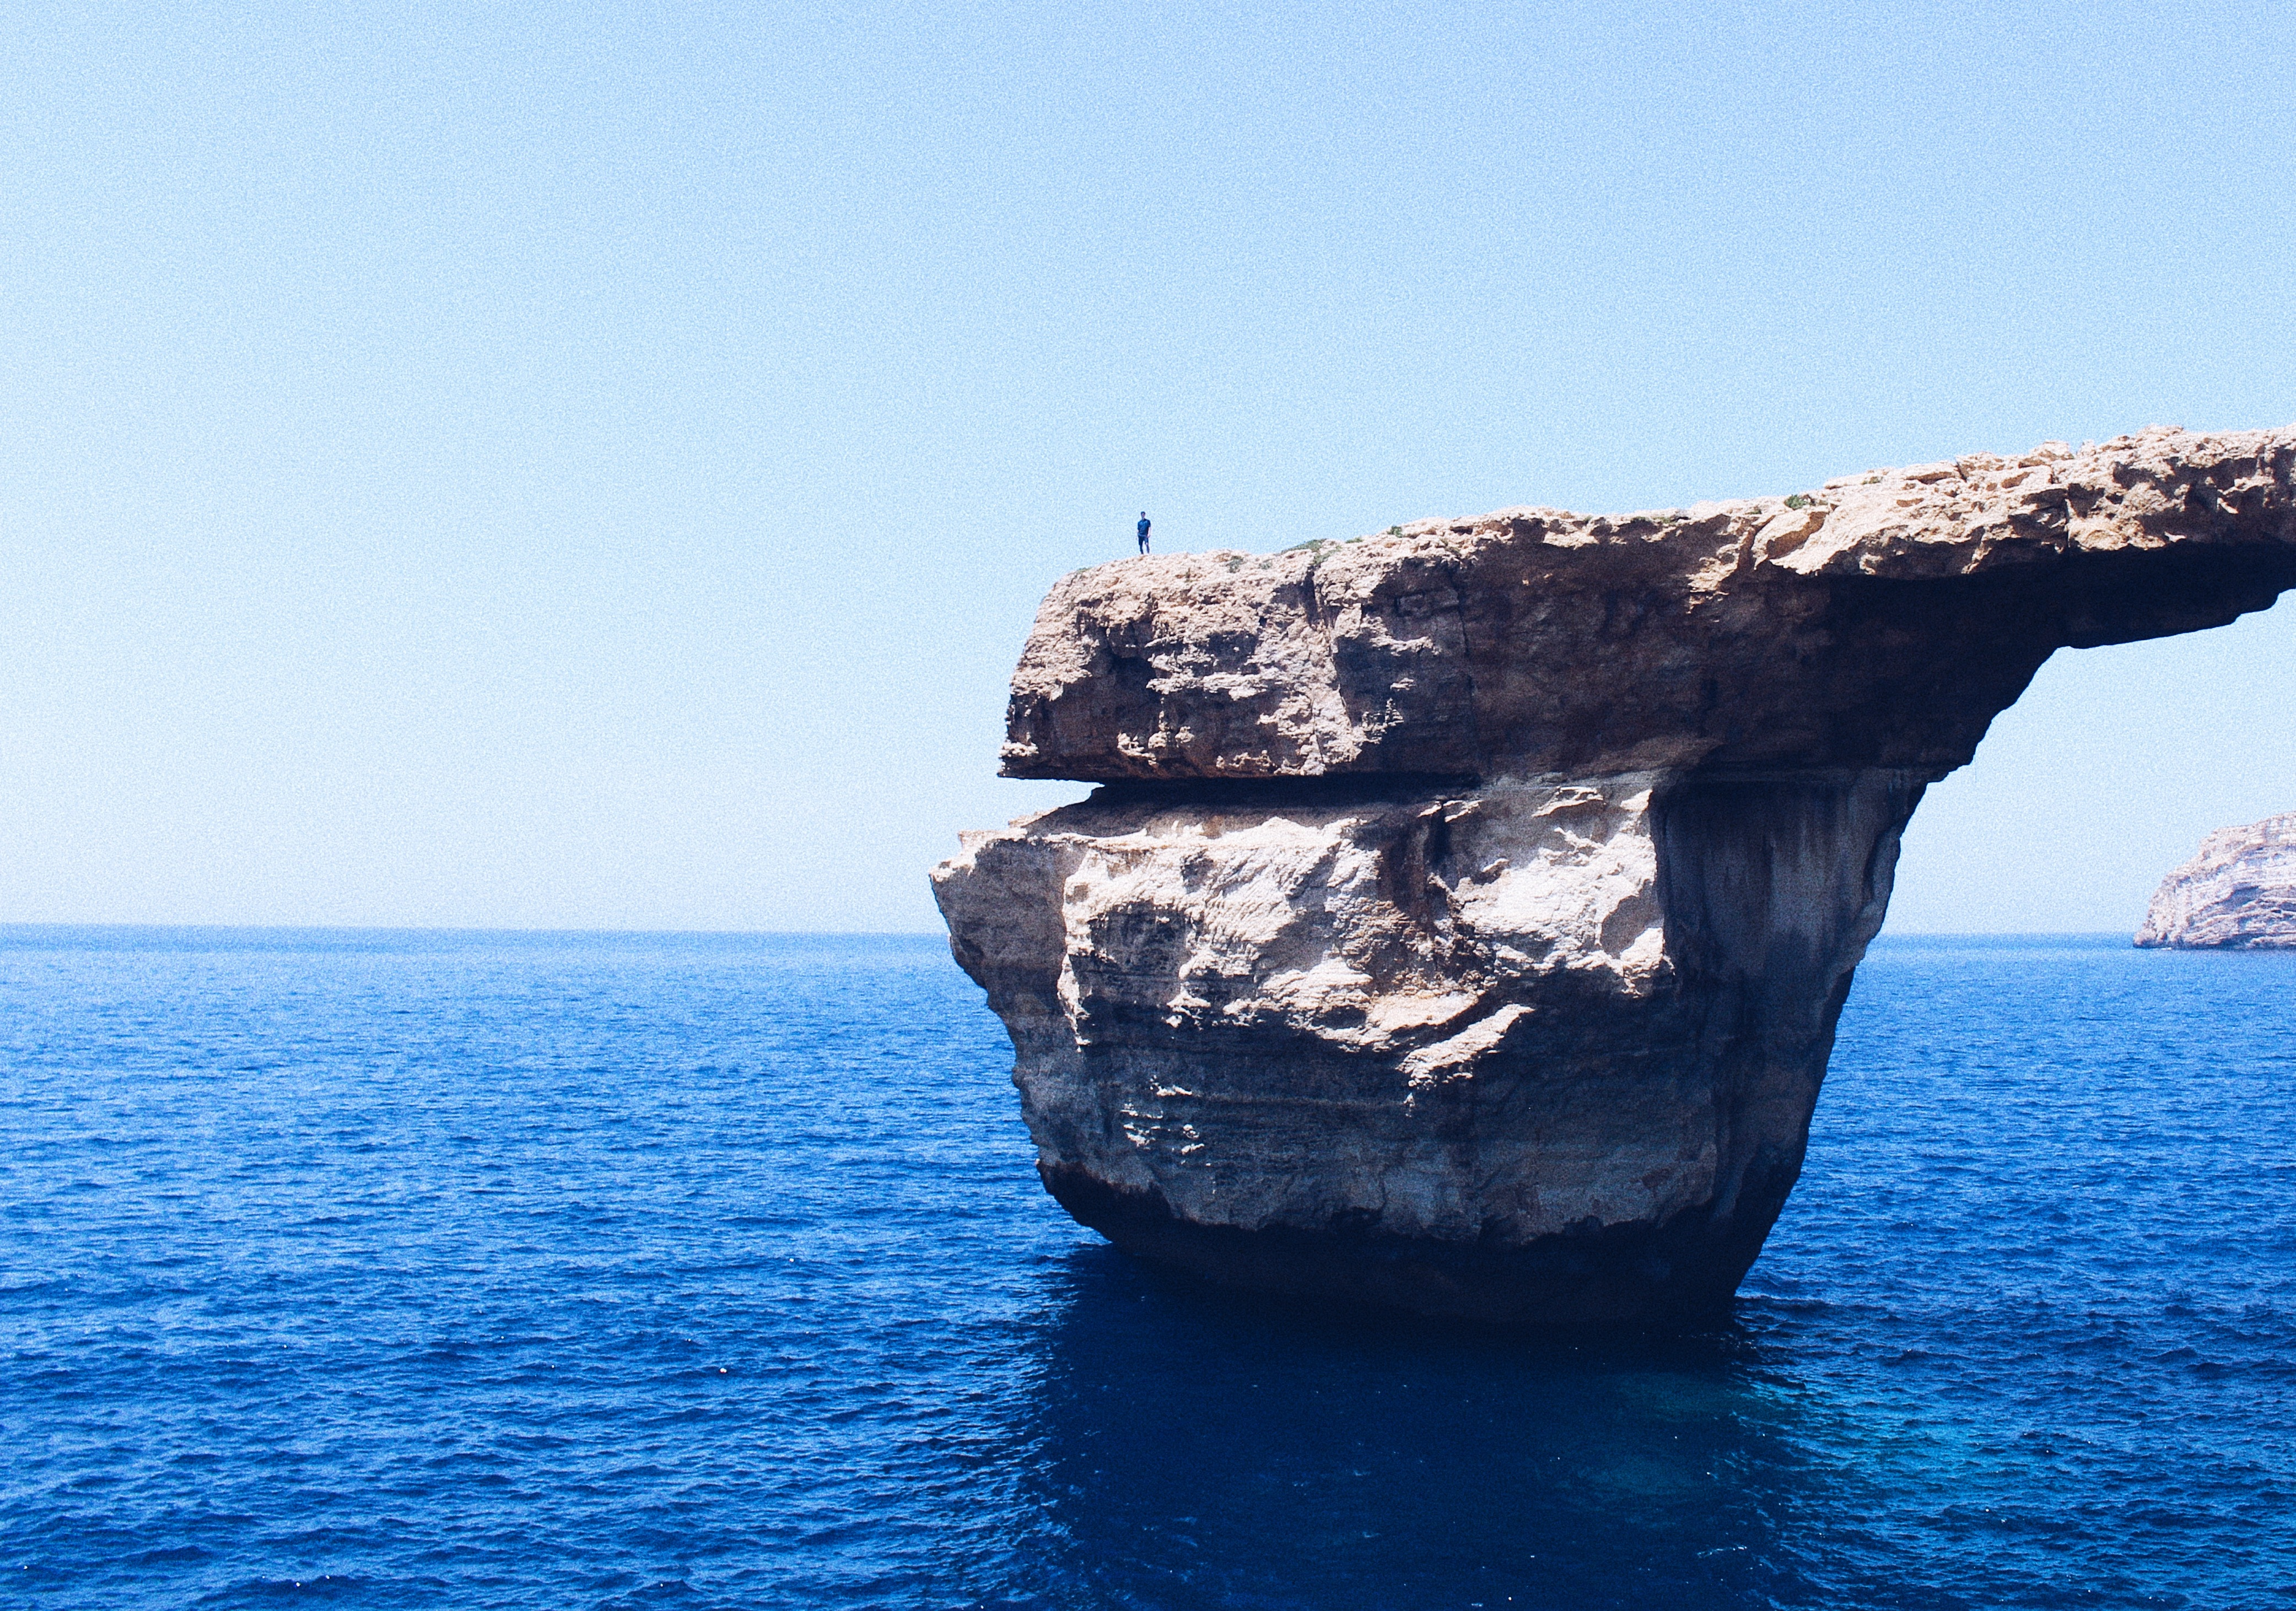 A large solitary rock in the middle of a blue body of water with a person on the edge.